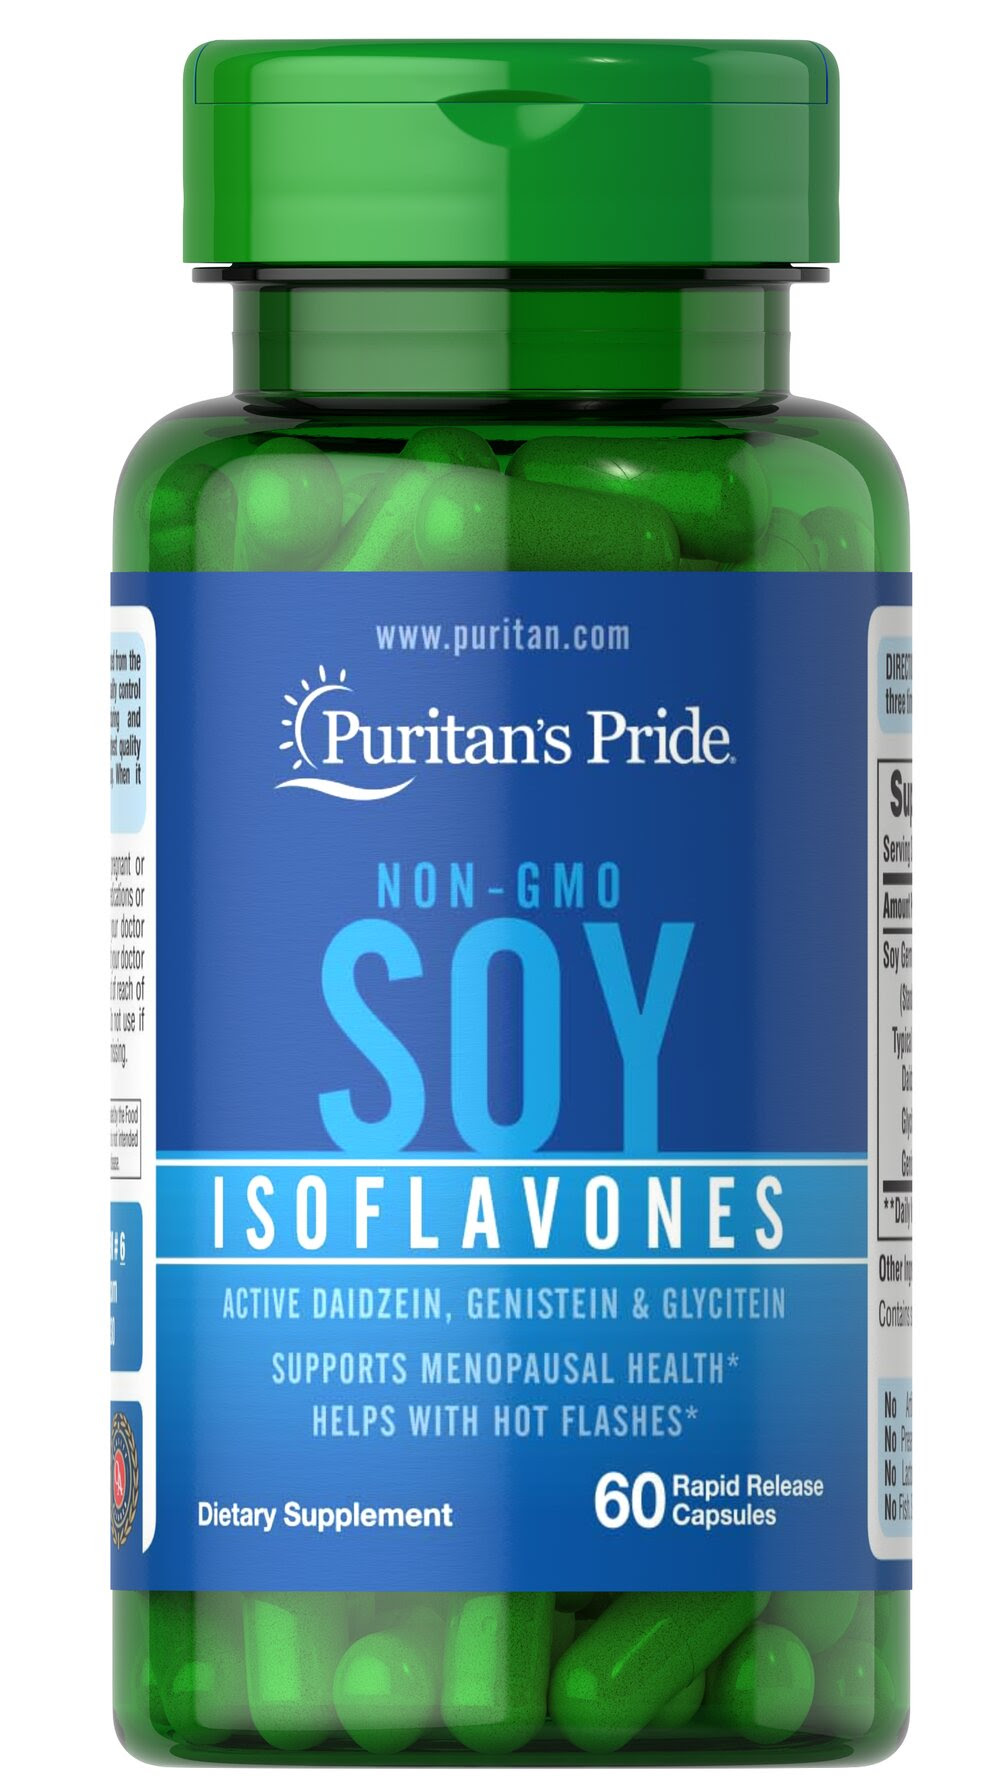 Non-GMO Soy Isoflavones 750 mg <p>Soy is a rich, plant-based source of phytoestrogens, which are naturally occurring compounds that help with hot flashes in menopausal women.**</p><p>Made from non-GMO certified soybeans, soy isoflavones provide holistic supplementation for a woman's midlife years. Our non-GMO soy isoflavones  include Daidzein, Genistein, and other soy isoflavones.</p> 60 Capsules 750 mg $9.49